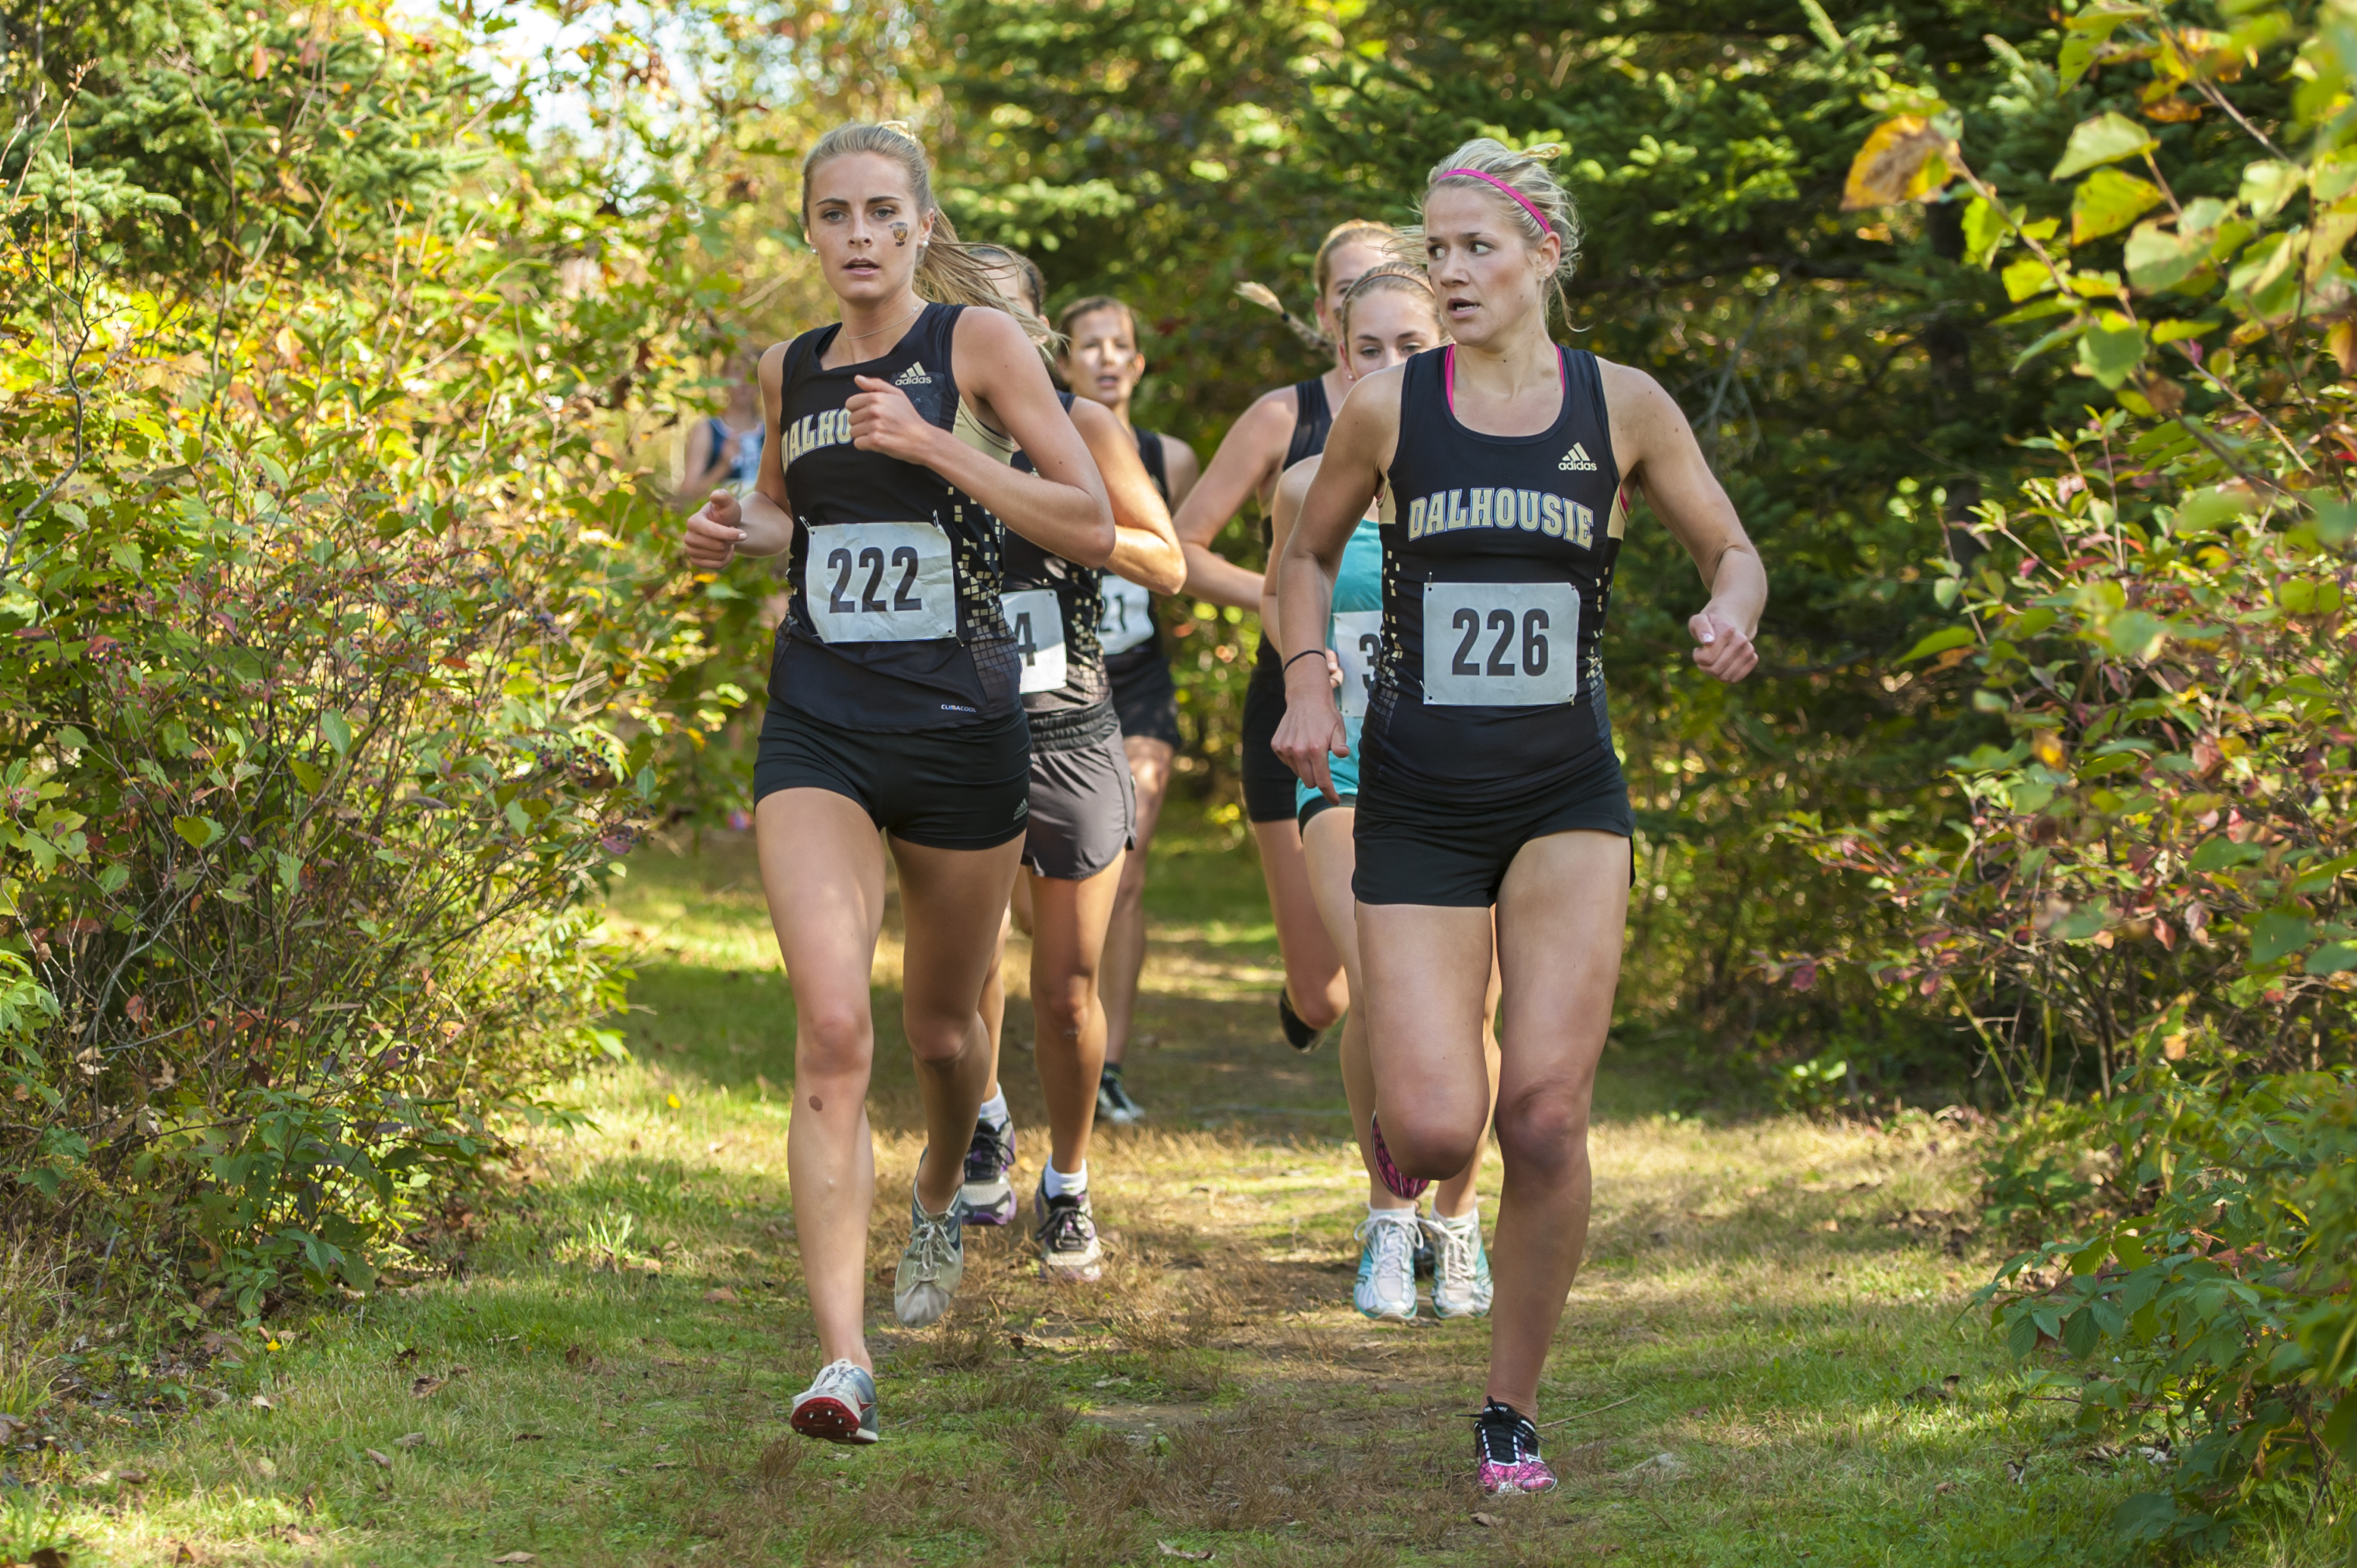 Cross-country leads the pack in this semester's rankings (Photo by Chris Parent)